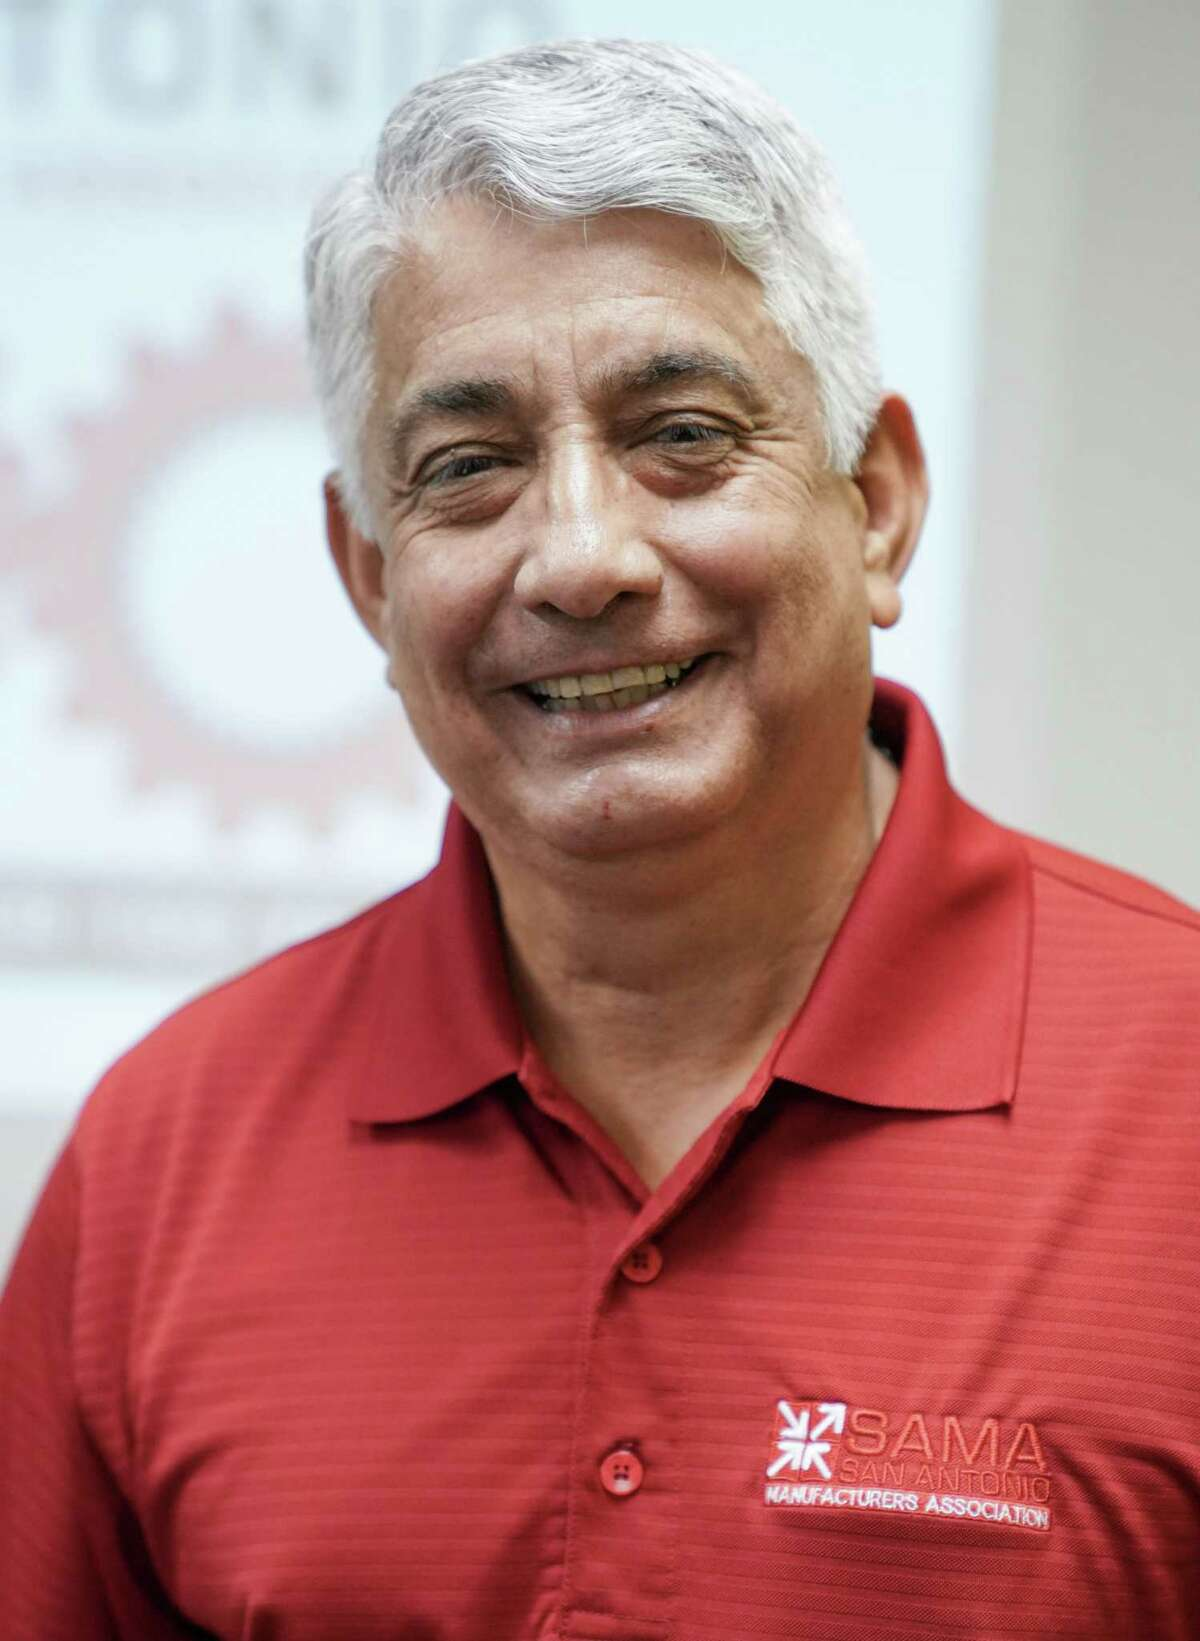 Rey Chavez is president and CEO of the San Antonio Manufacturers Association, more than 1,500 manufacturers that employ nearly 52,000 people.